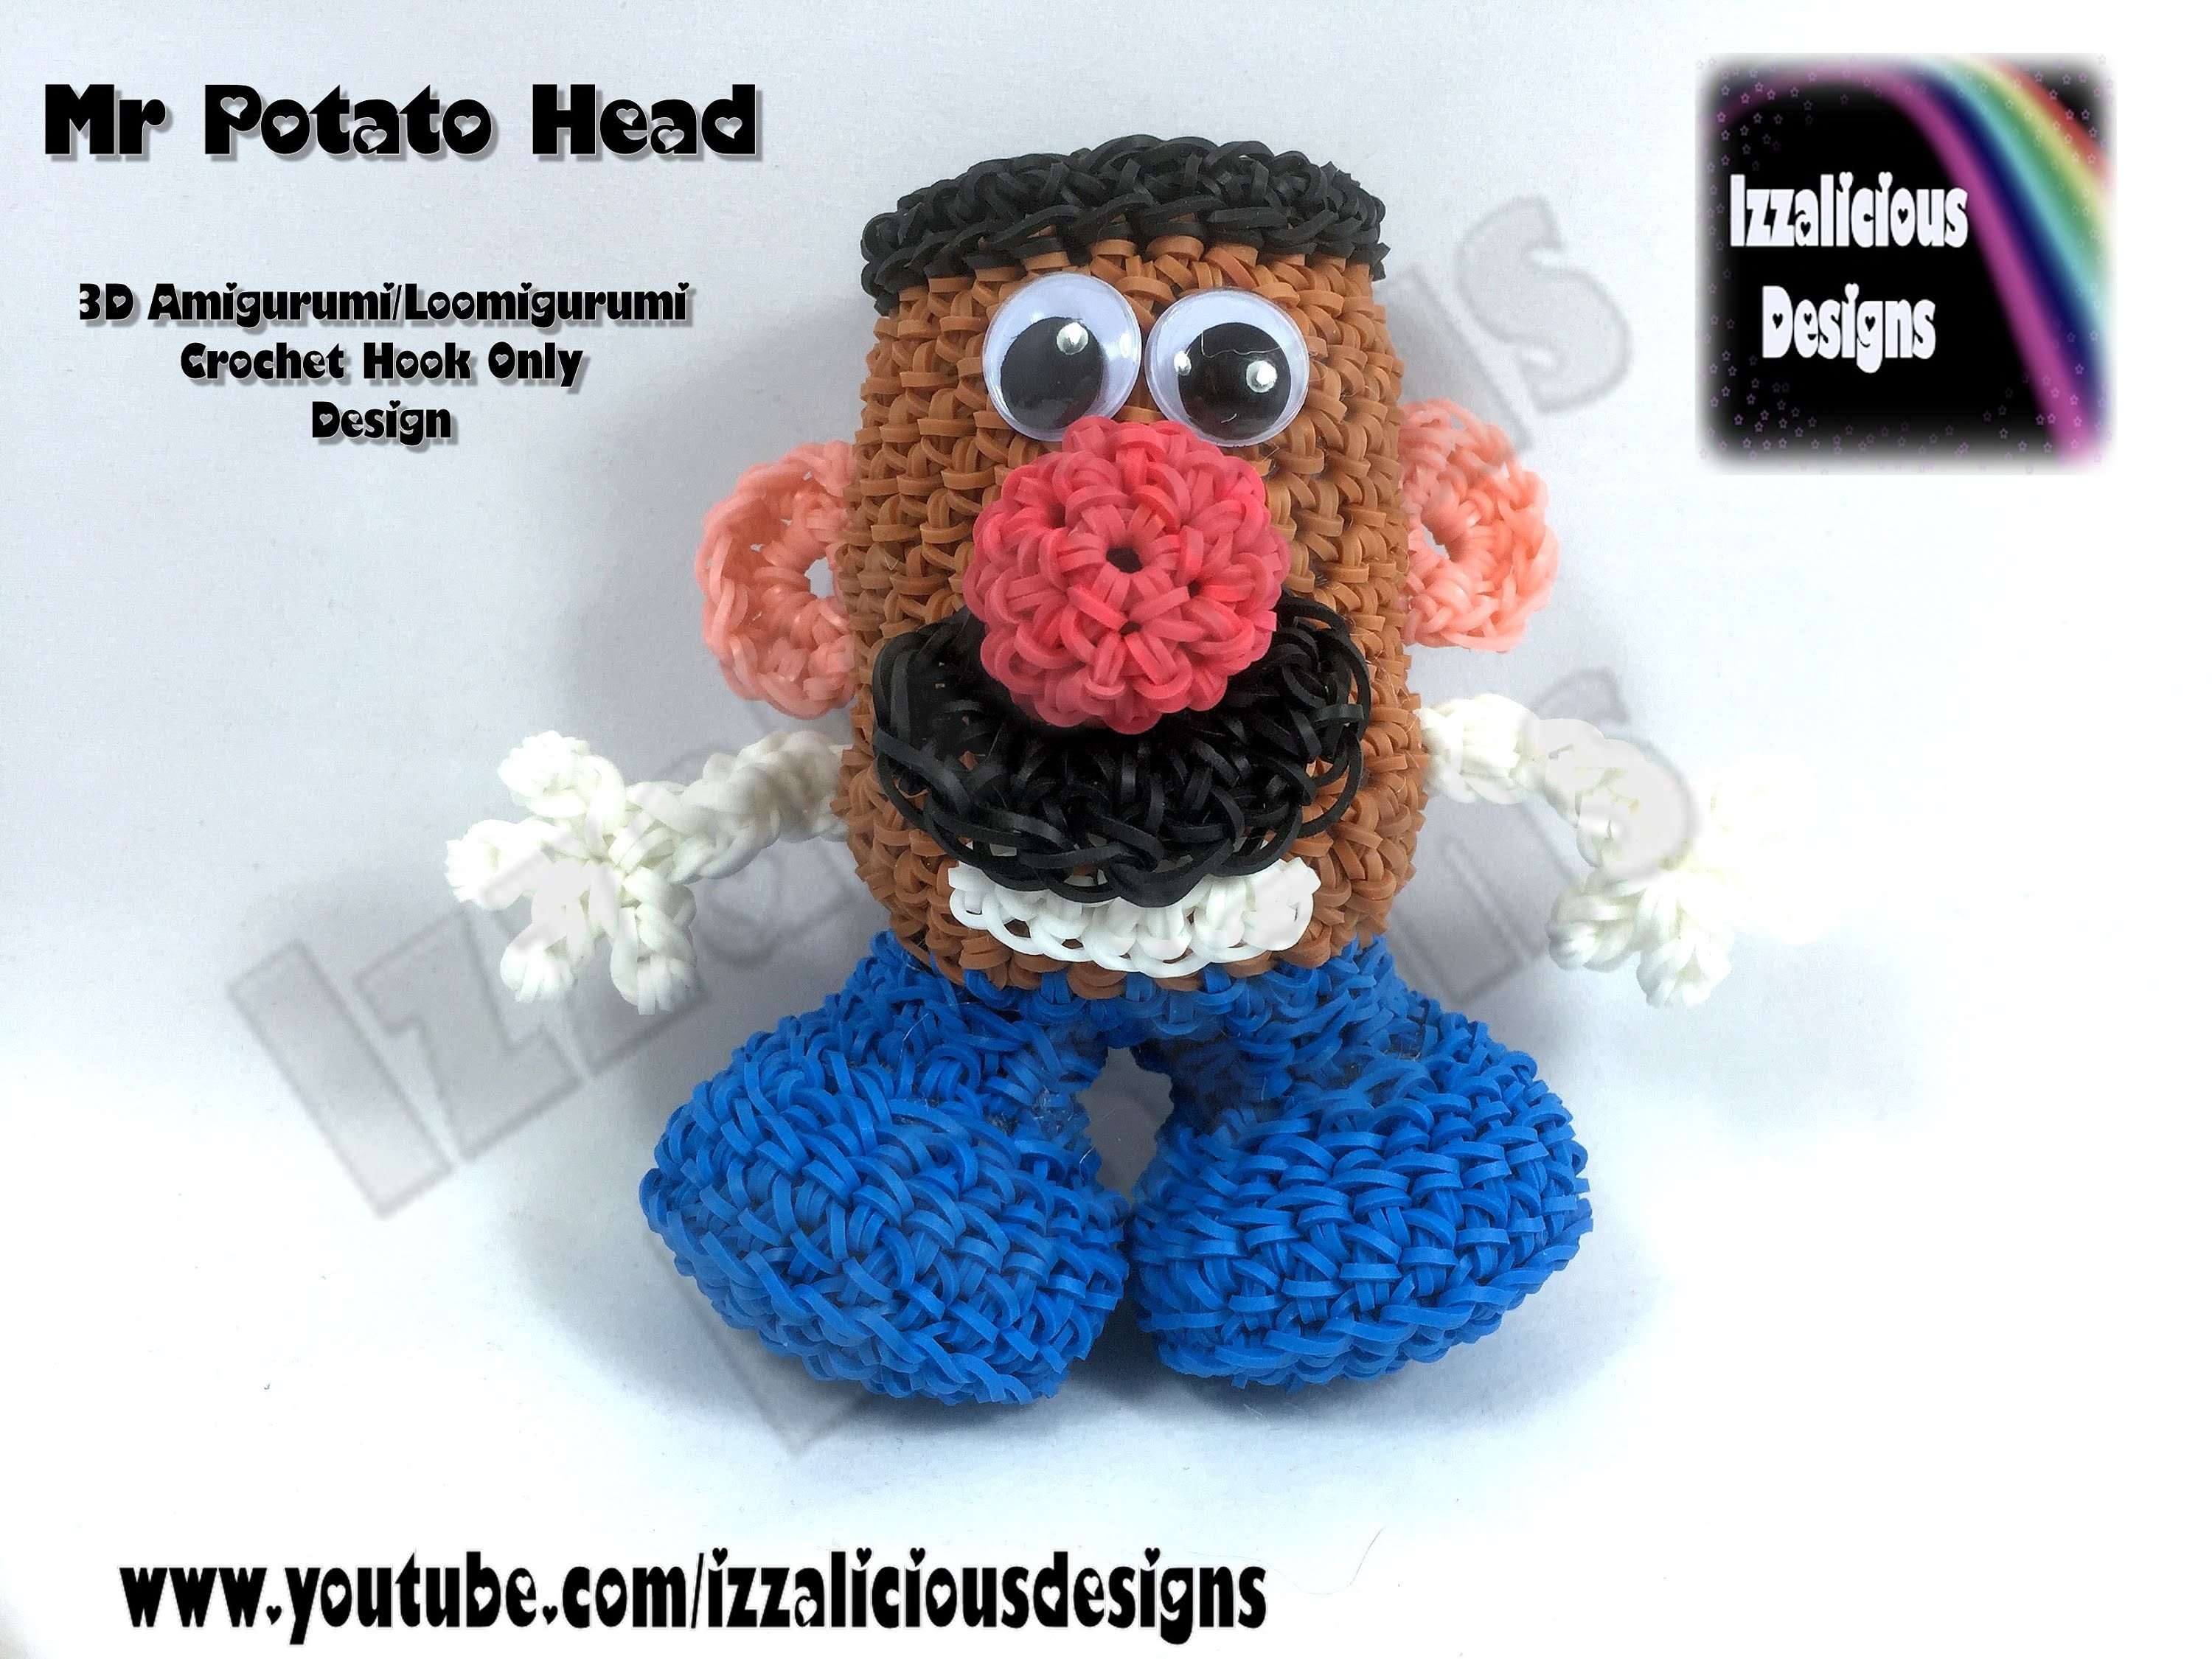 Rainbow Loom 3D Amigurumi.Loomigurumi Mr Potato Head Doll - Crochet Hook ONLY (loomless.loom-less)